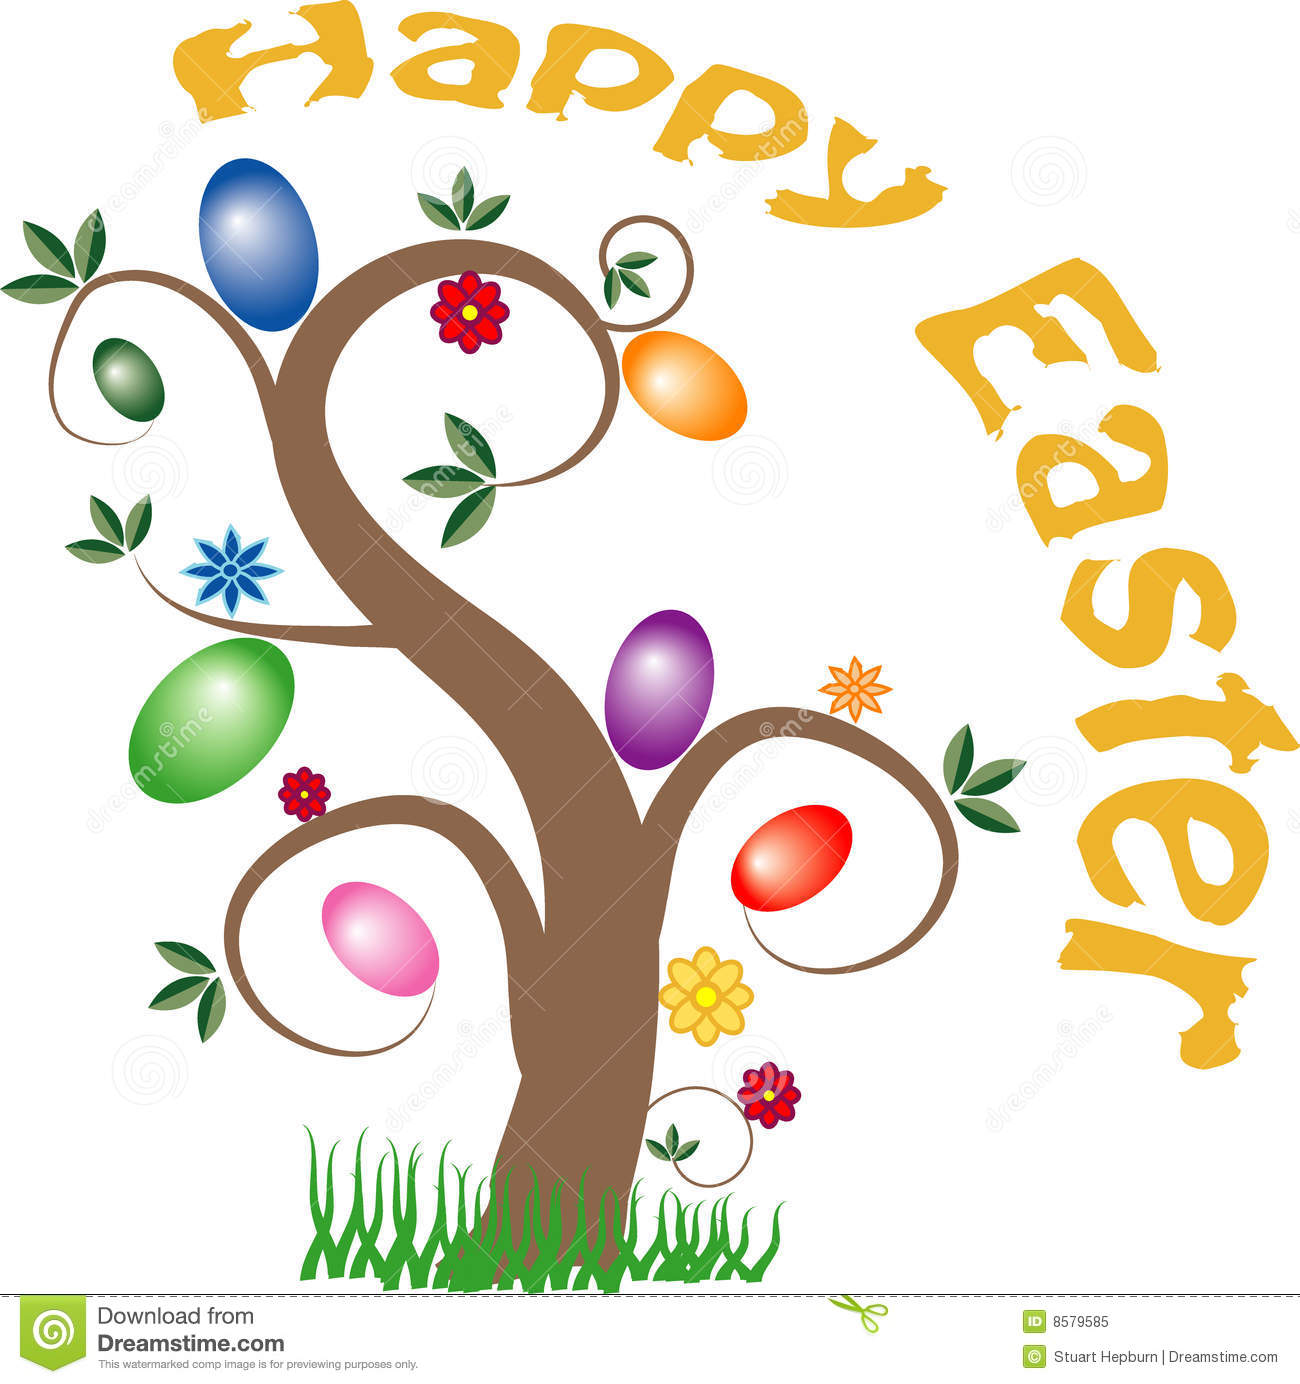 Easter egg tree clipart vector free download Happy Easter Tree Royalty Free Stock Photo - Image: 8579585 vector free download